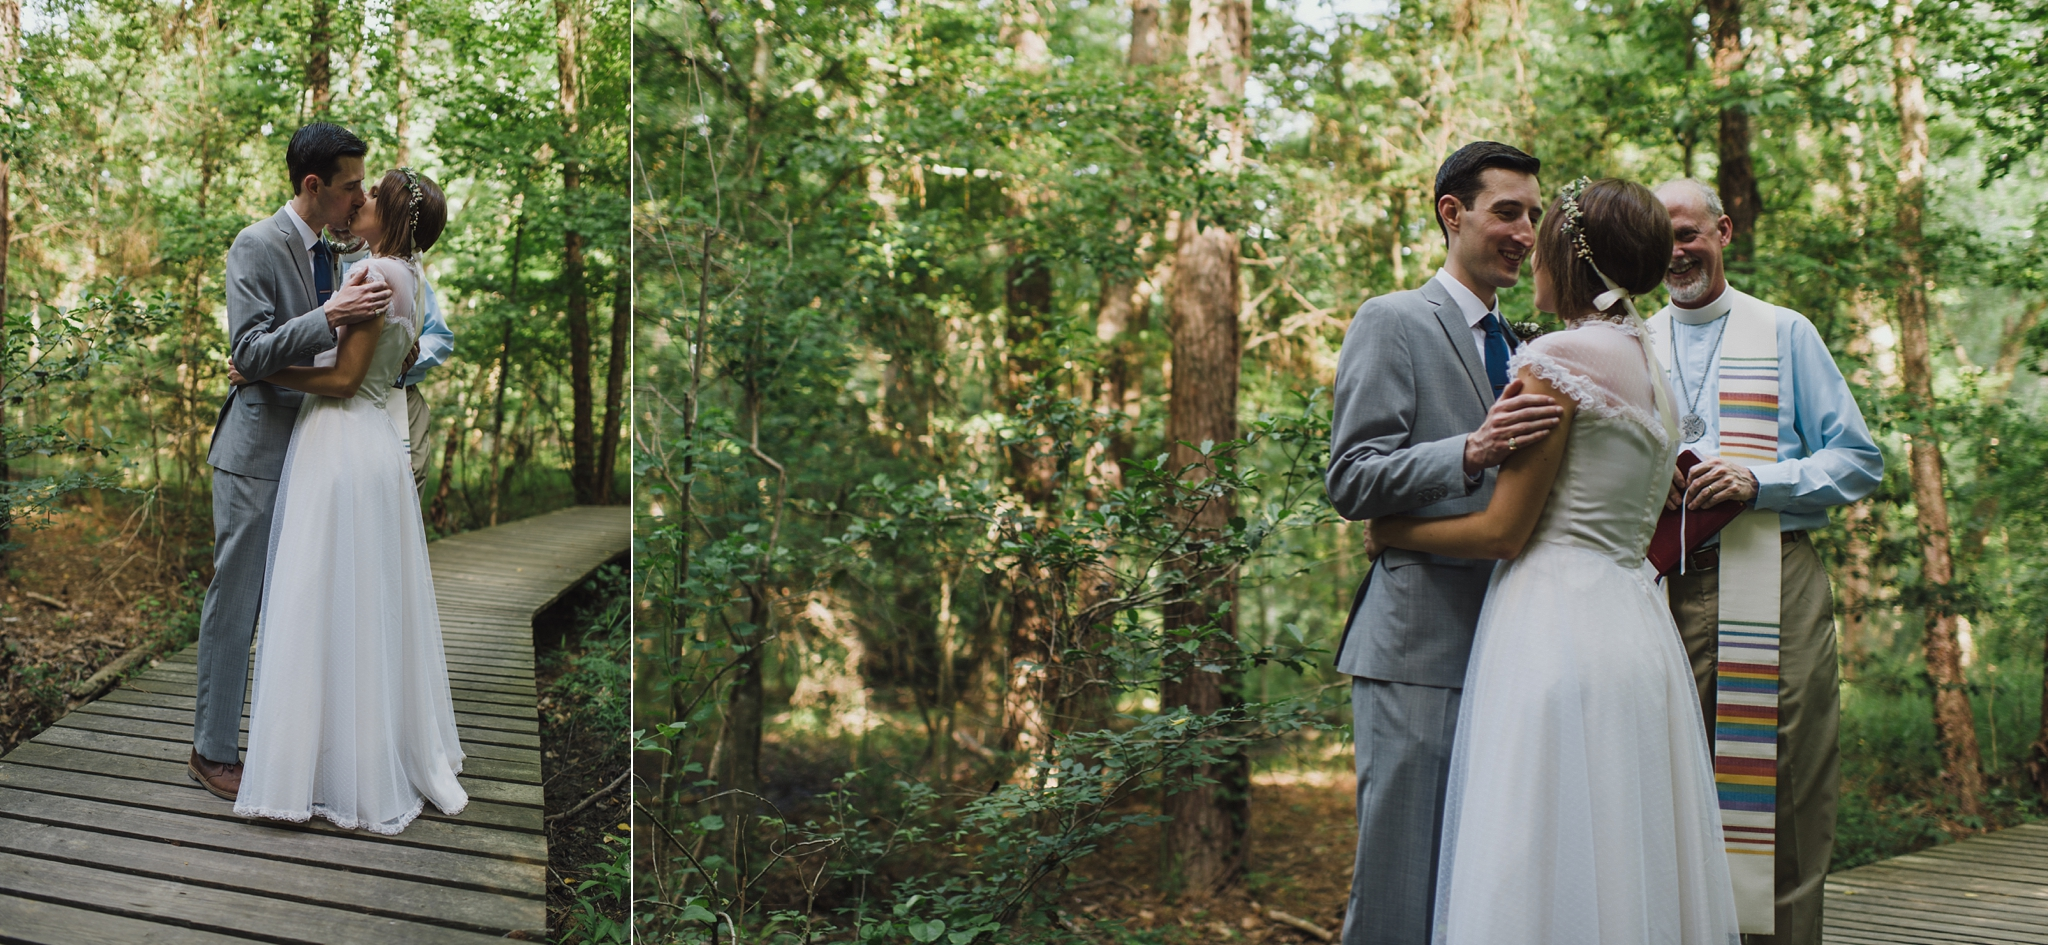 kaihla_tonai_intimate_wedding_elopement_photographer_0020